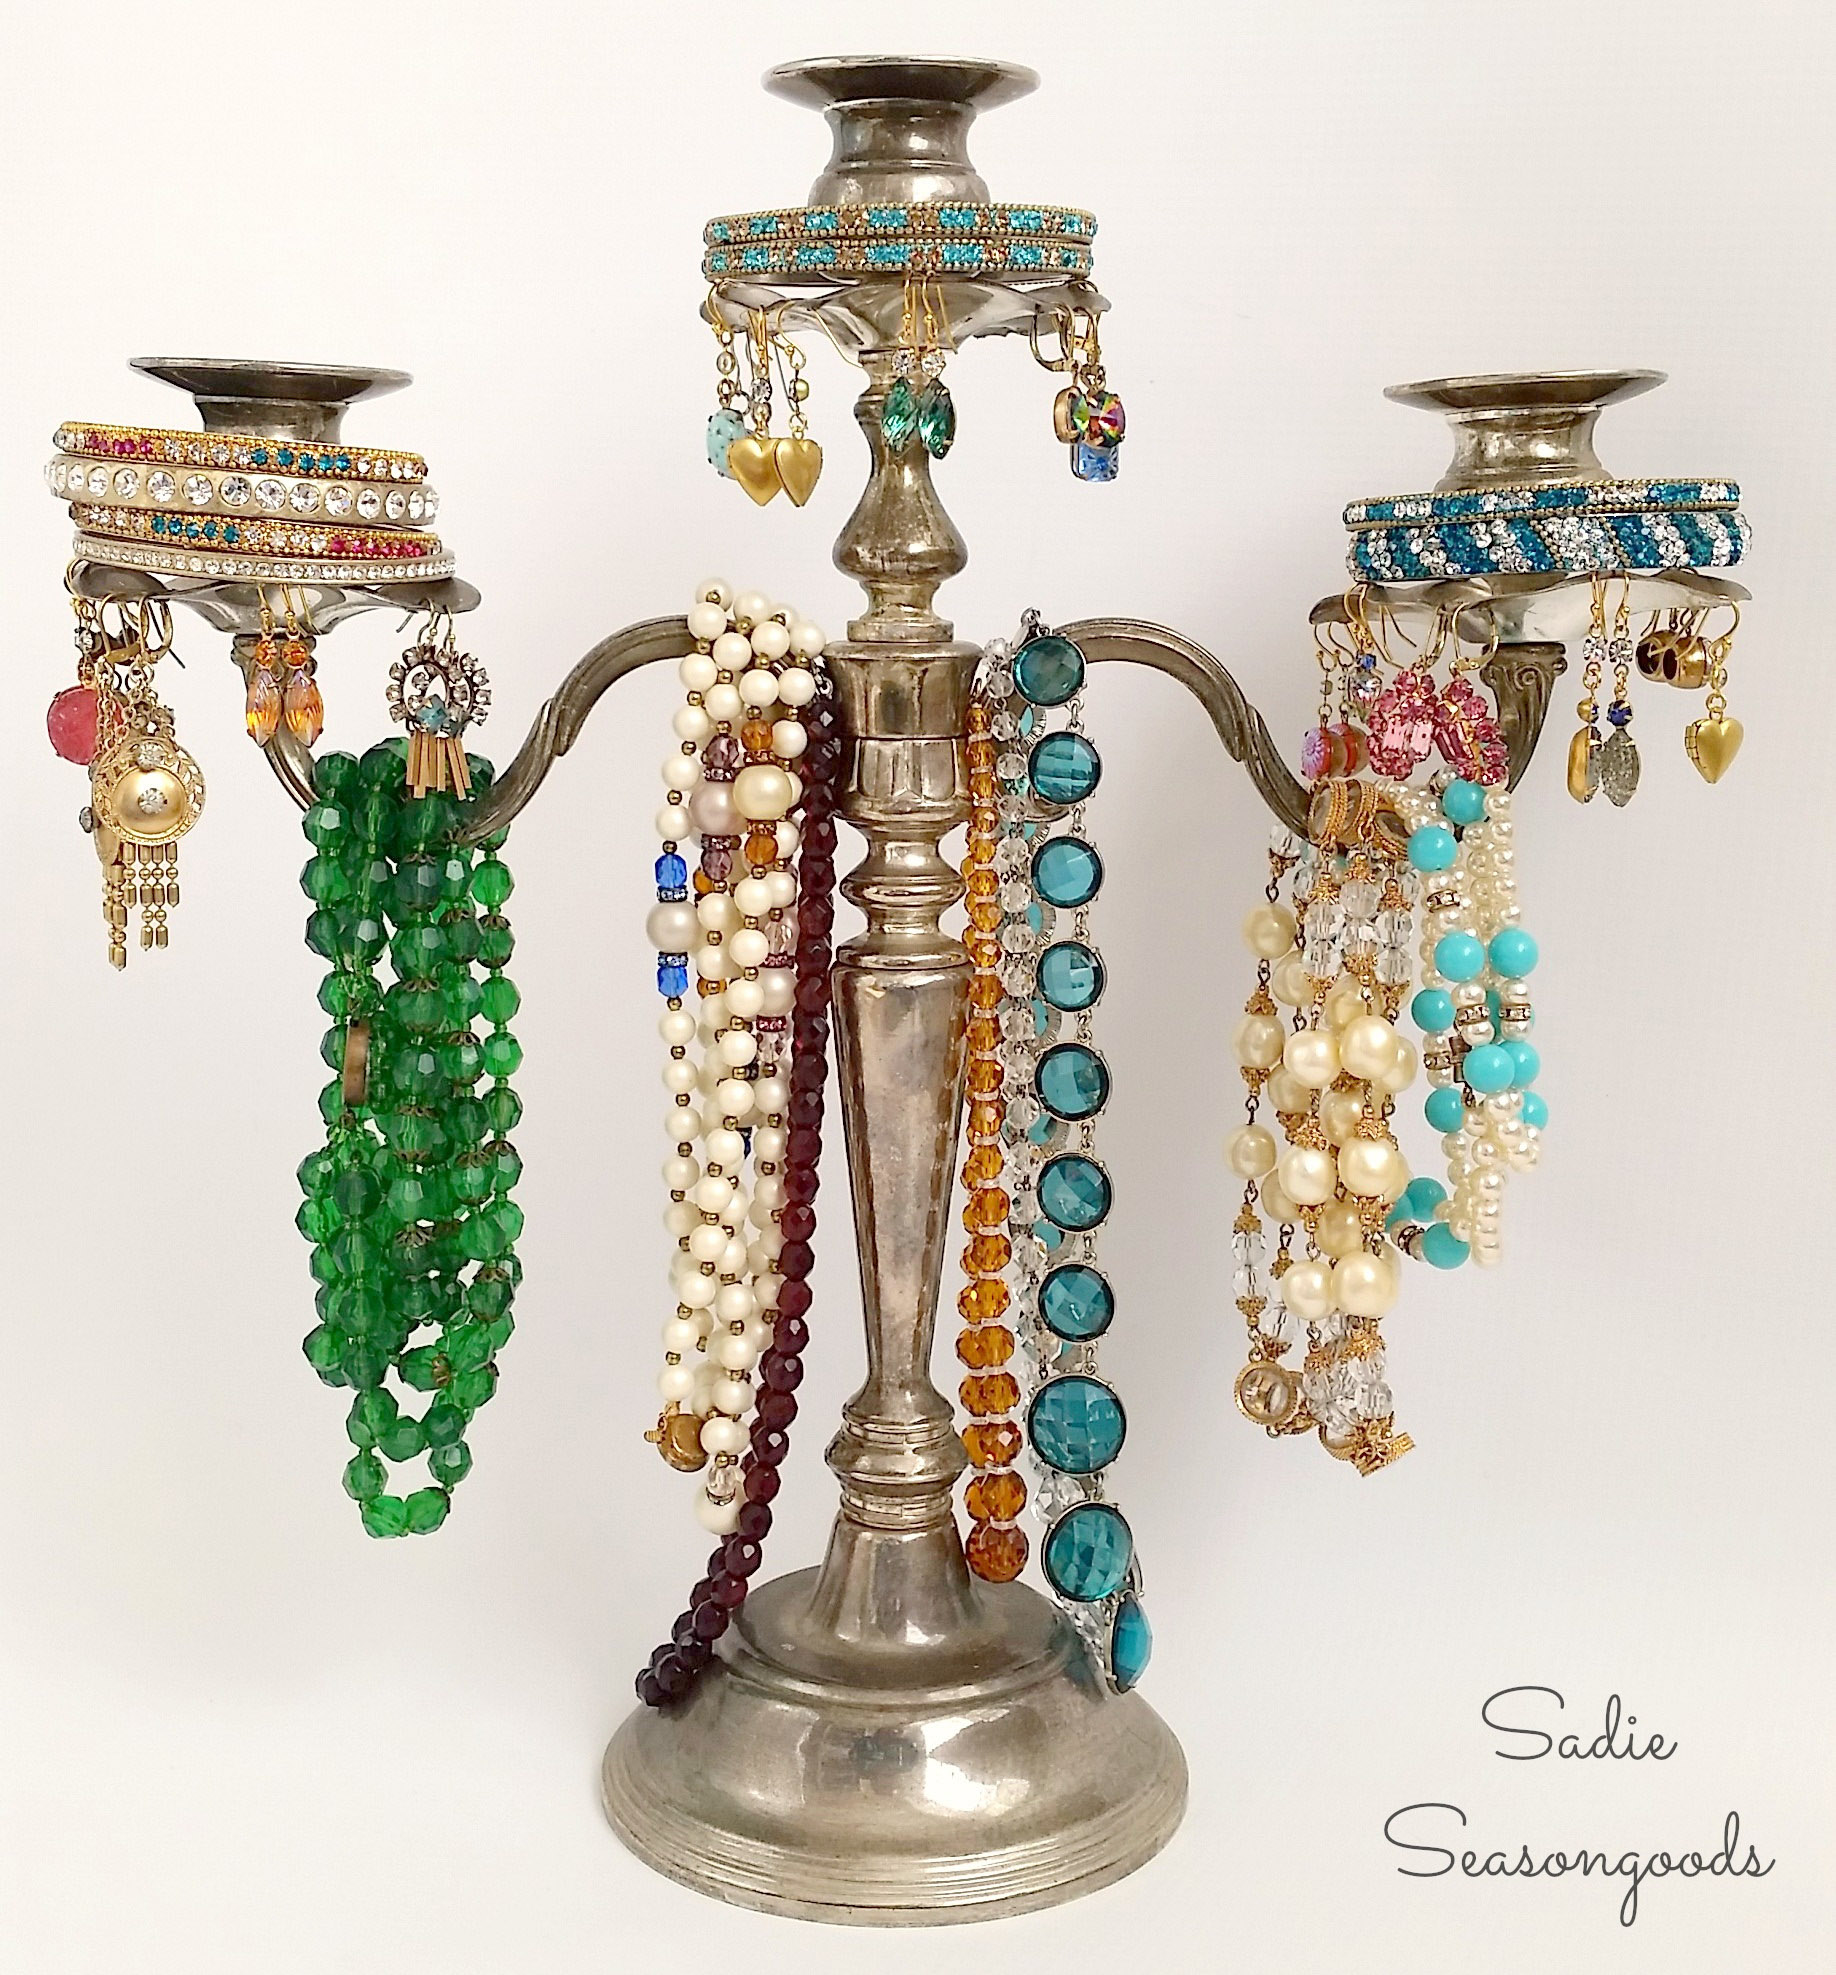 A Candelabra Jewelry Tree by Sadie Seasongoods, featured on Funky Junk Interiors